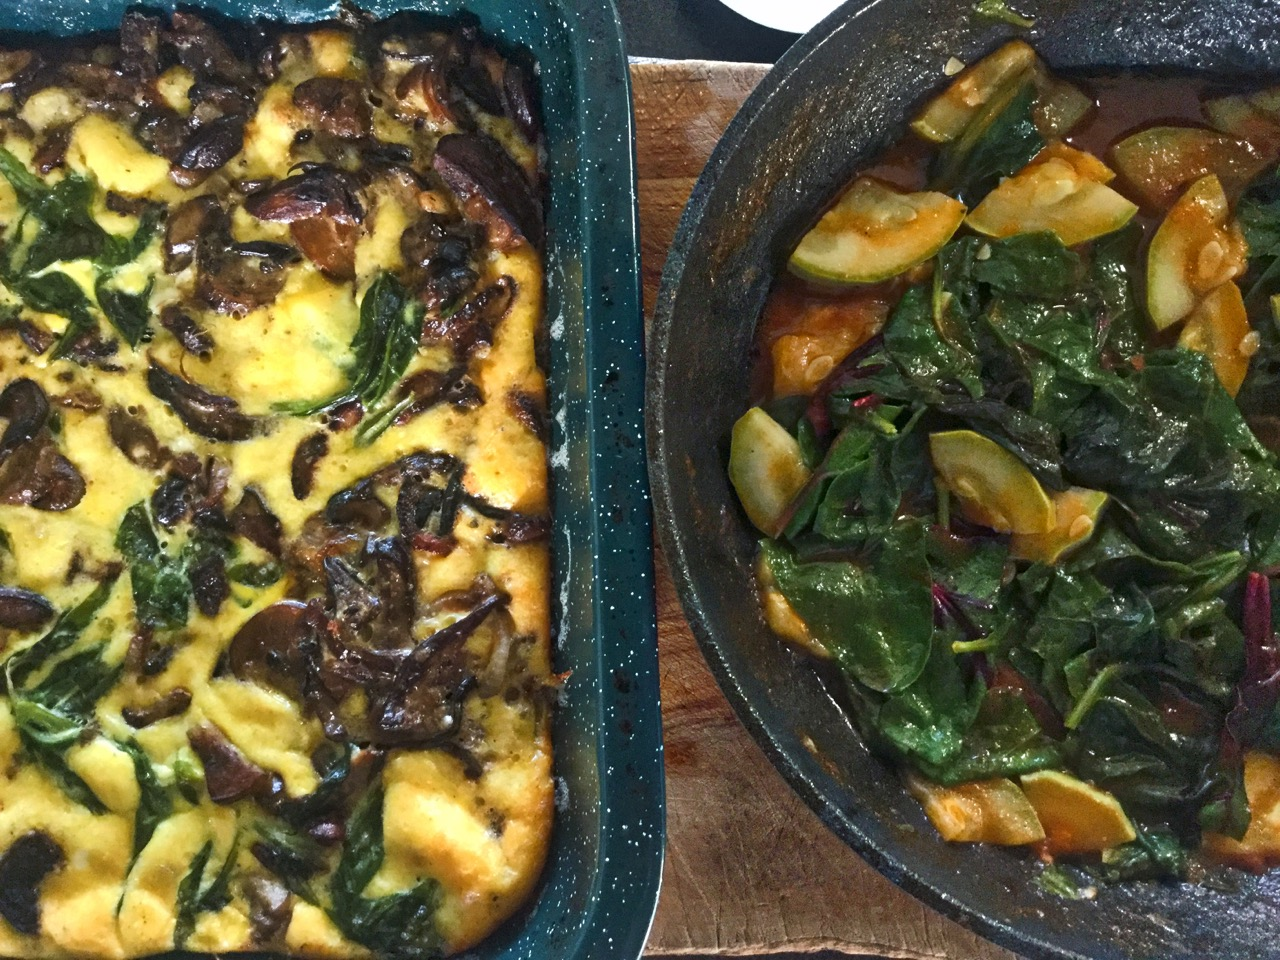 Cep, onion & spinach frittata along with tomato, courgette, chard & spinach